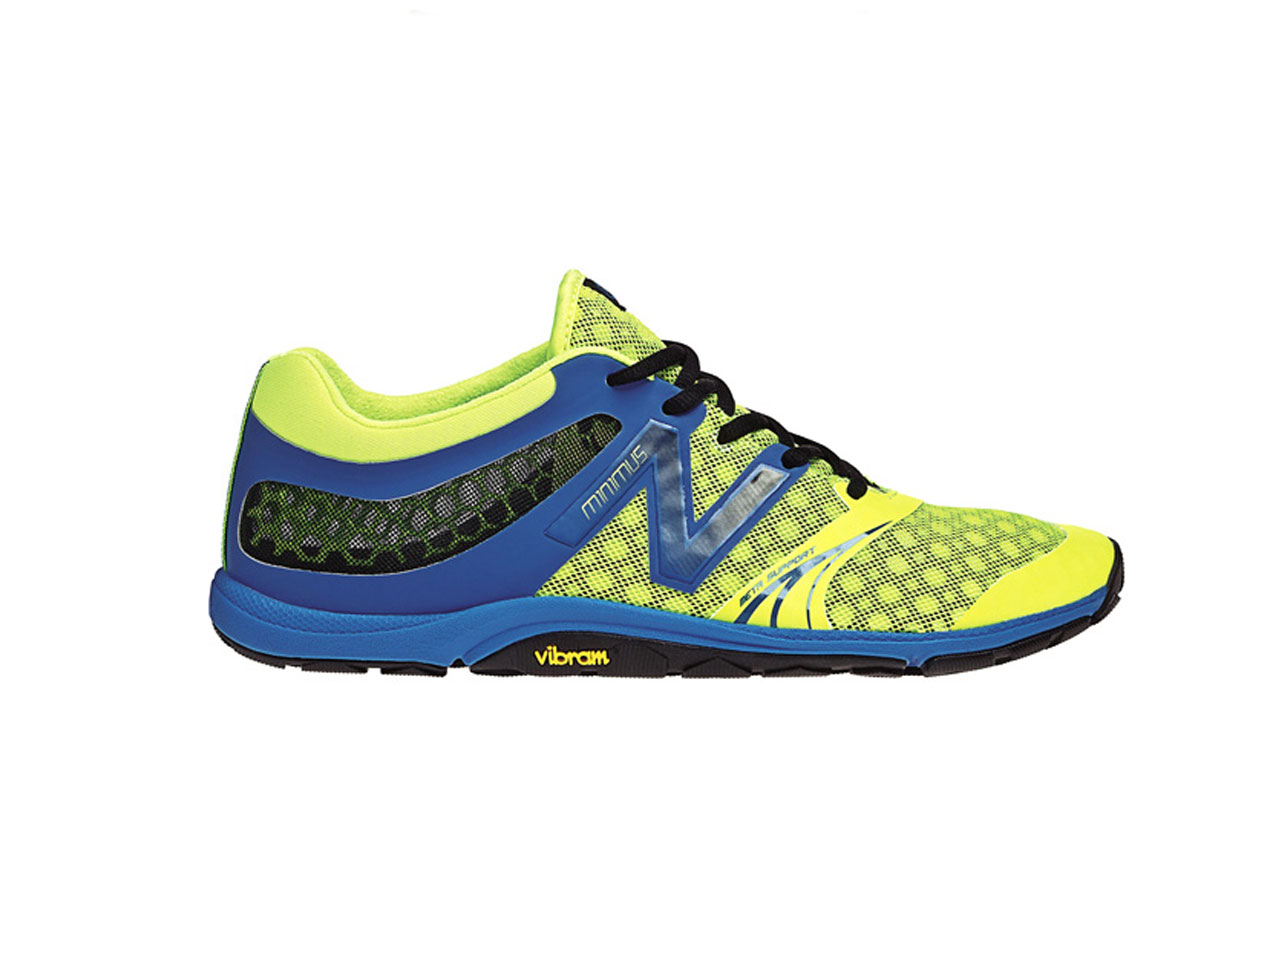 merrell crossfit shoes promo code for